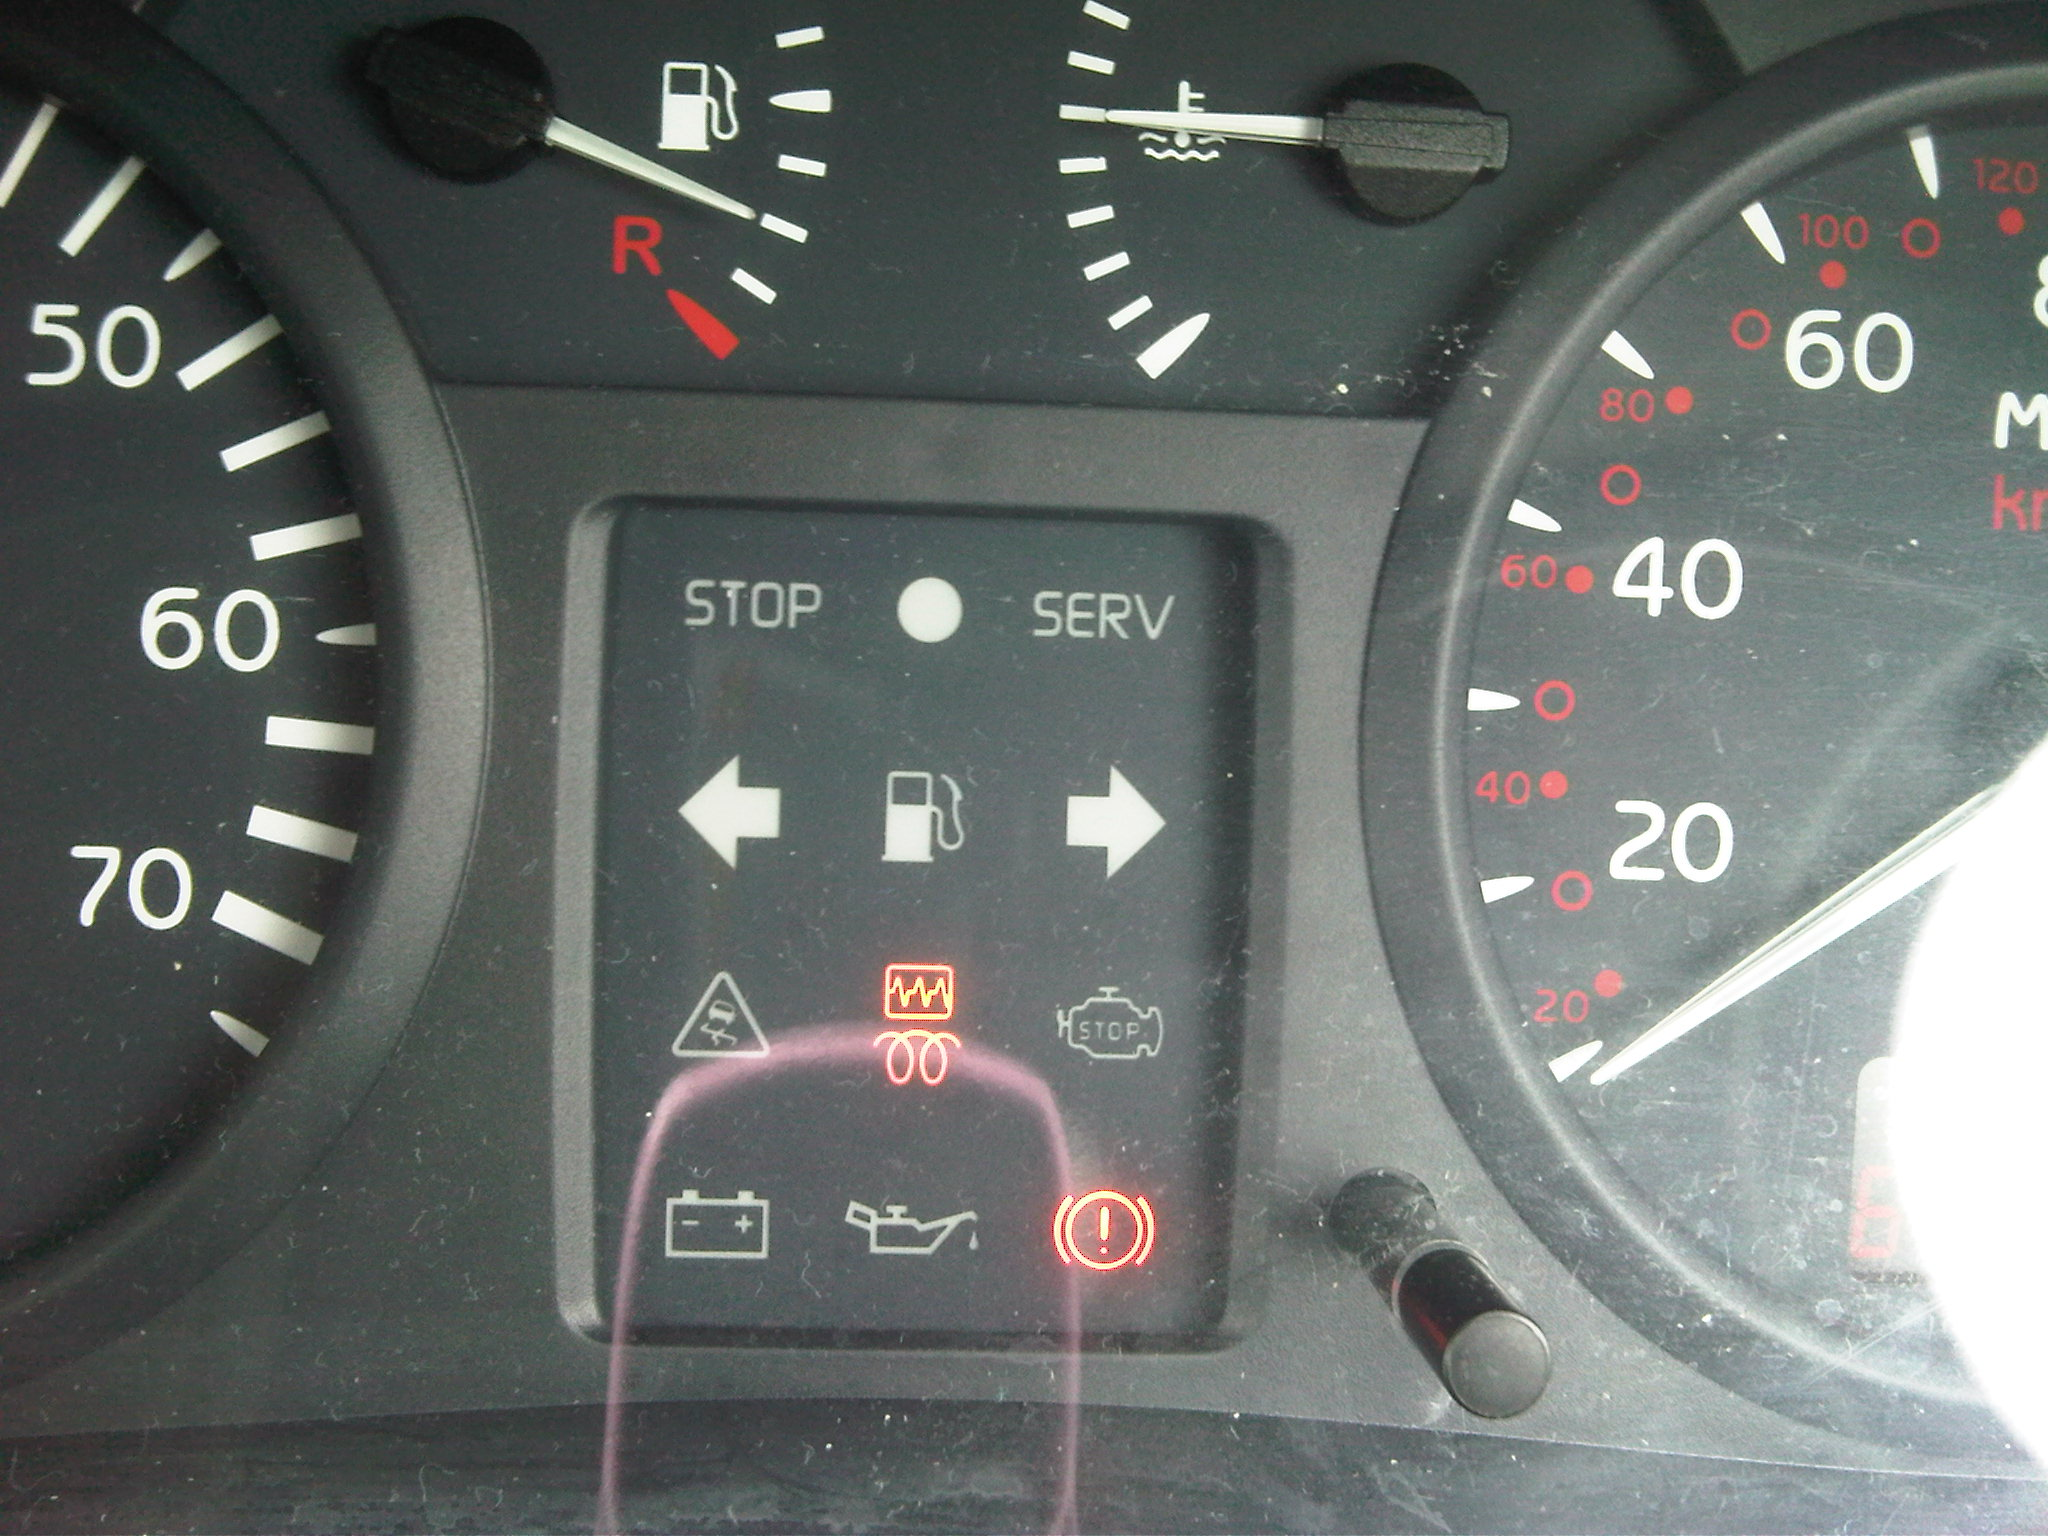 Warning Light On Car Dashboard - Car signs on dashboardfunny interpretations of the lights on your car dashboard what